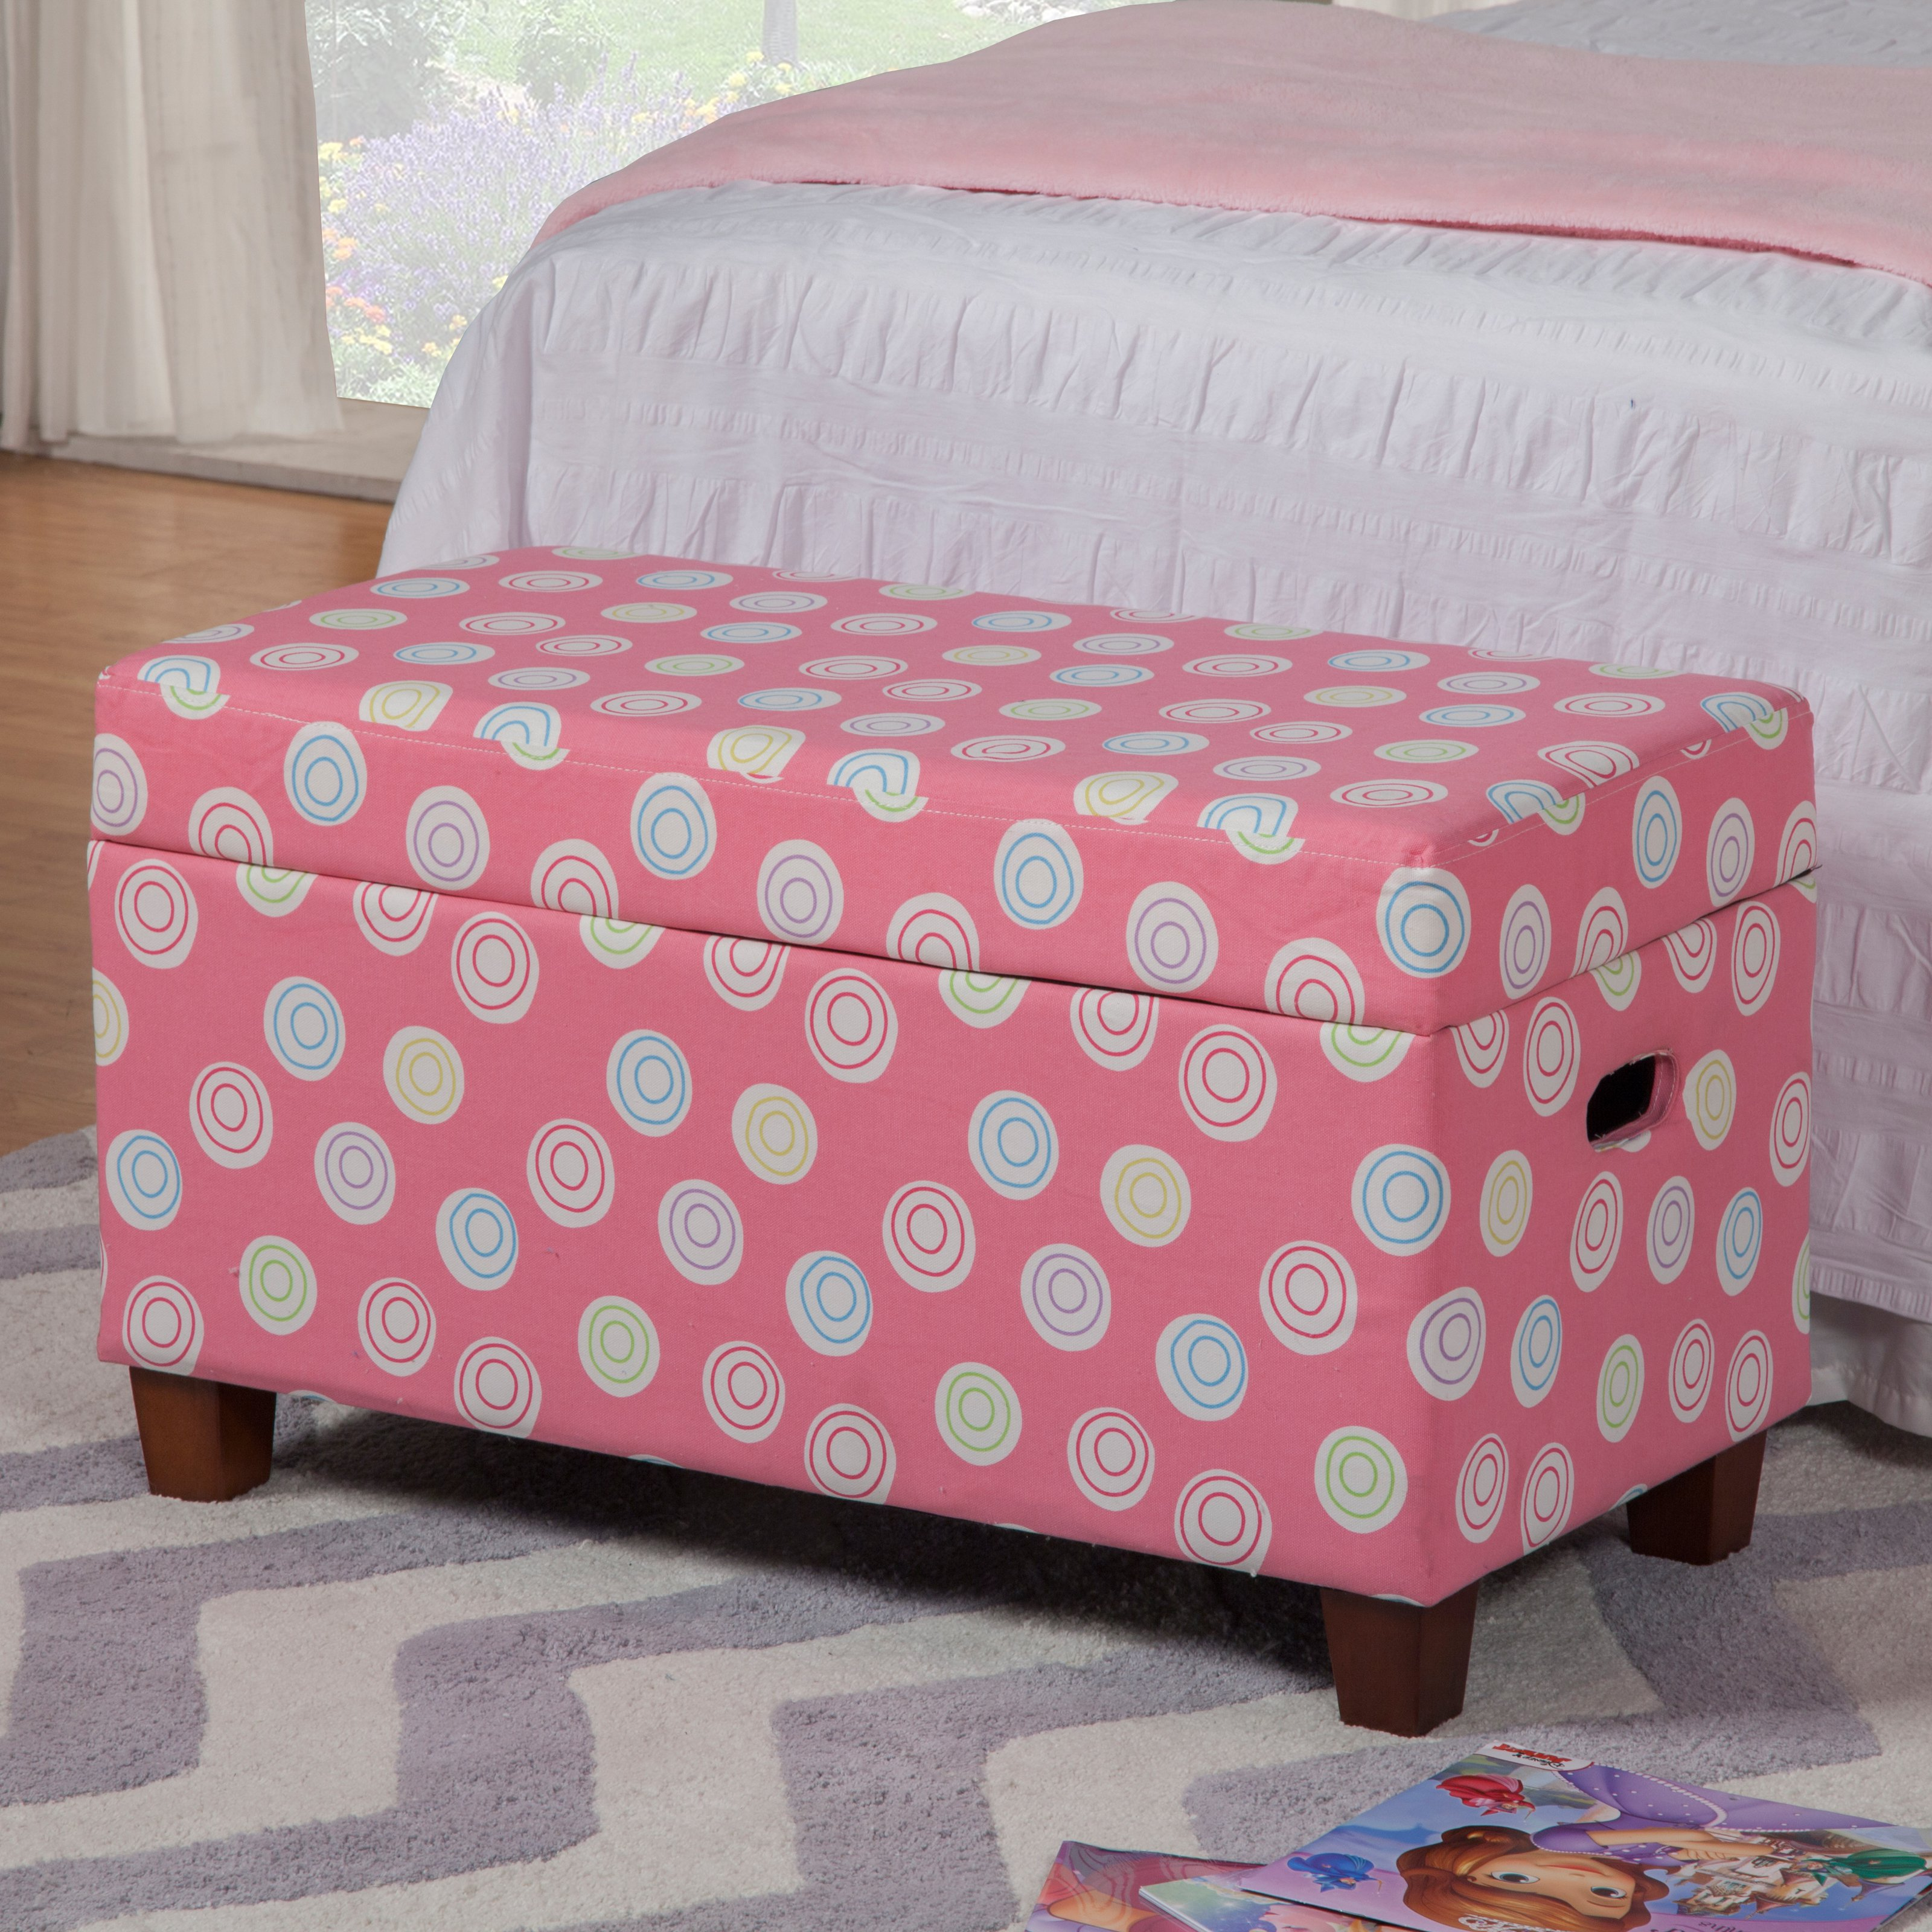 Kinfine Upholstered Deluxe Kids Storage Bench Polka Dot by Overstock